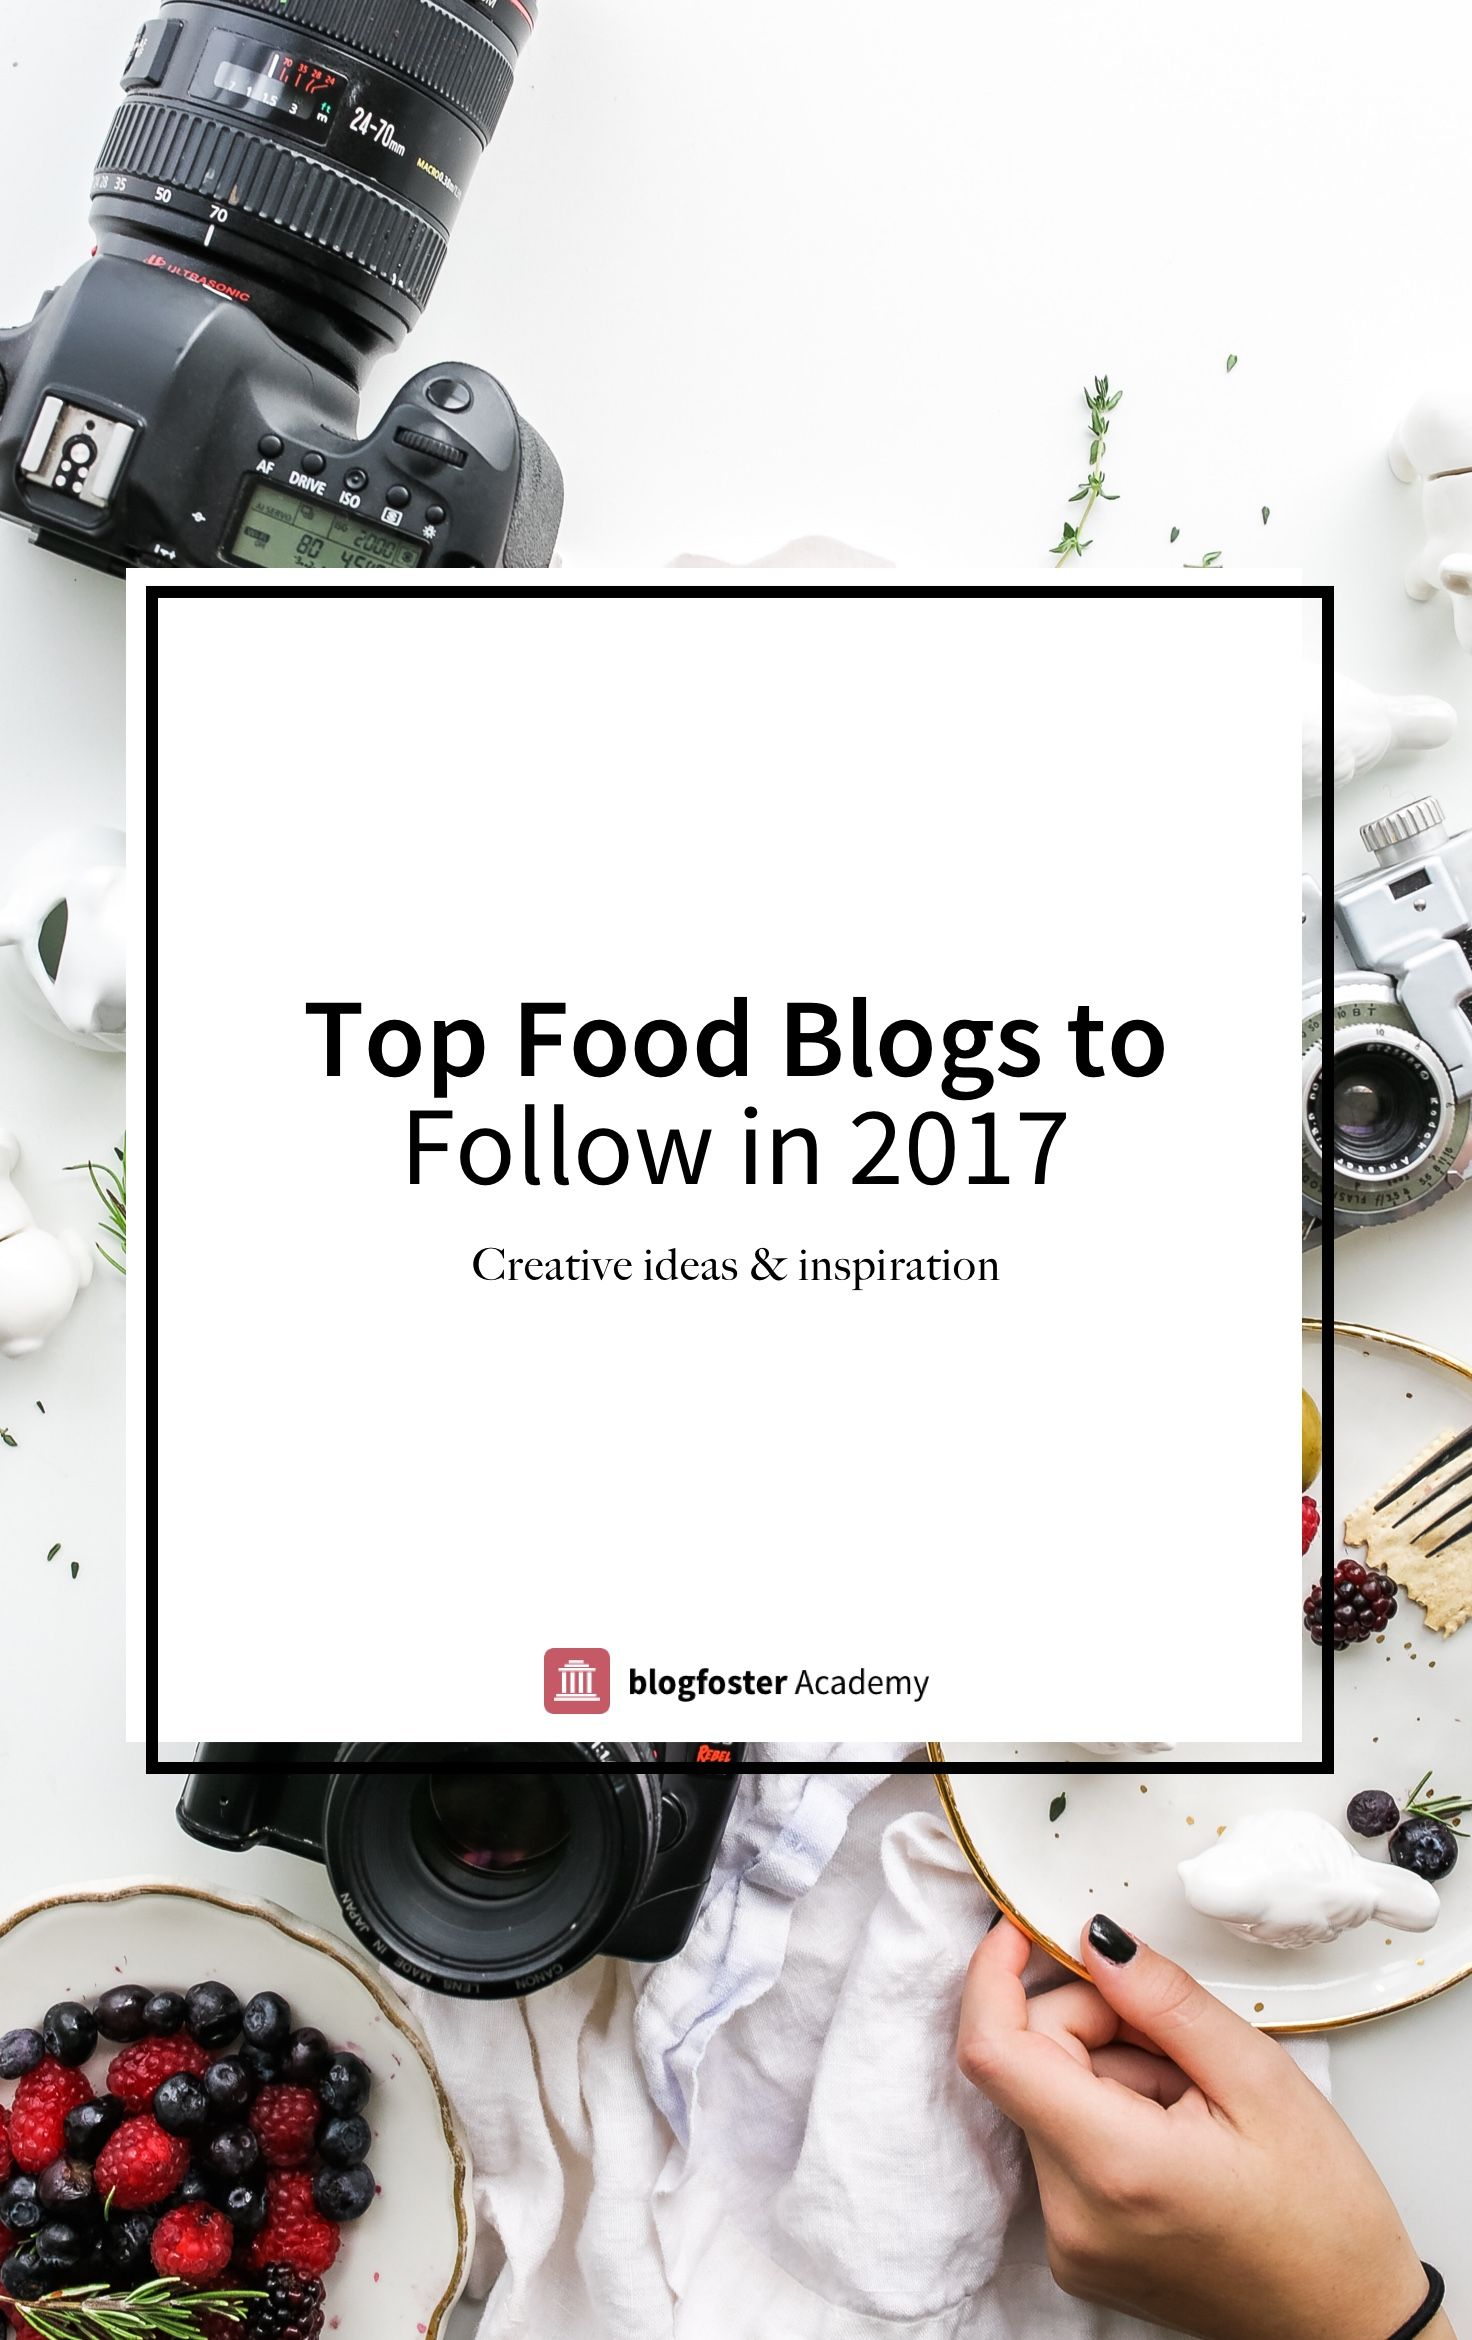 Food bloggers are great at getting us excited about new recipes and restaurant recommendations. Here are our favourite food blogs of 2017...